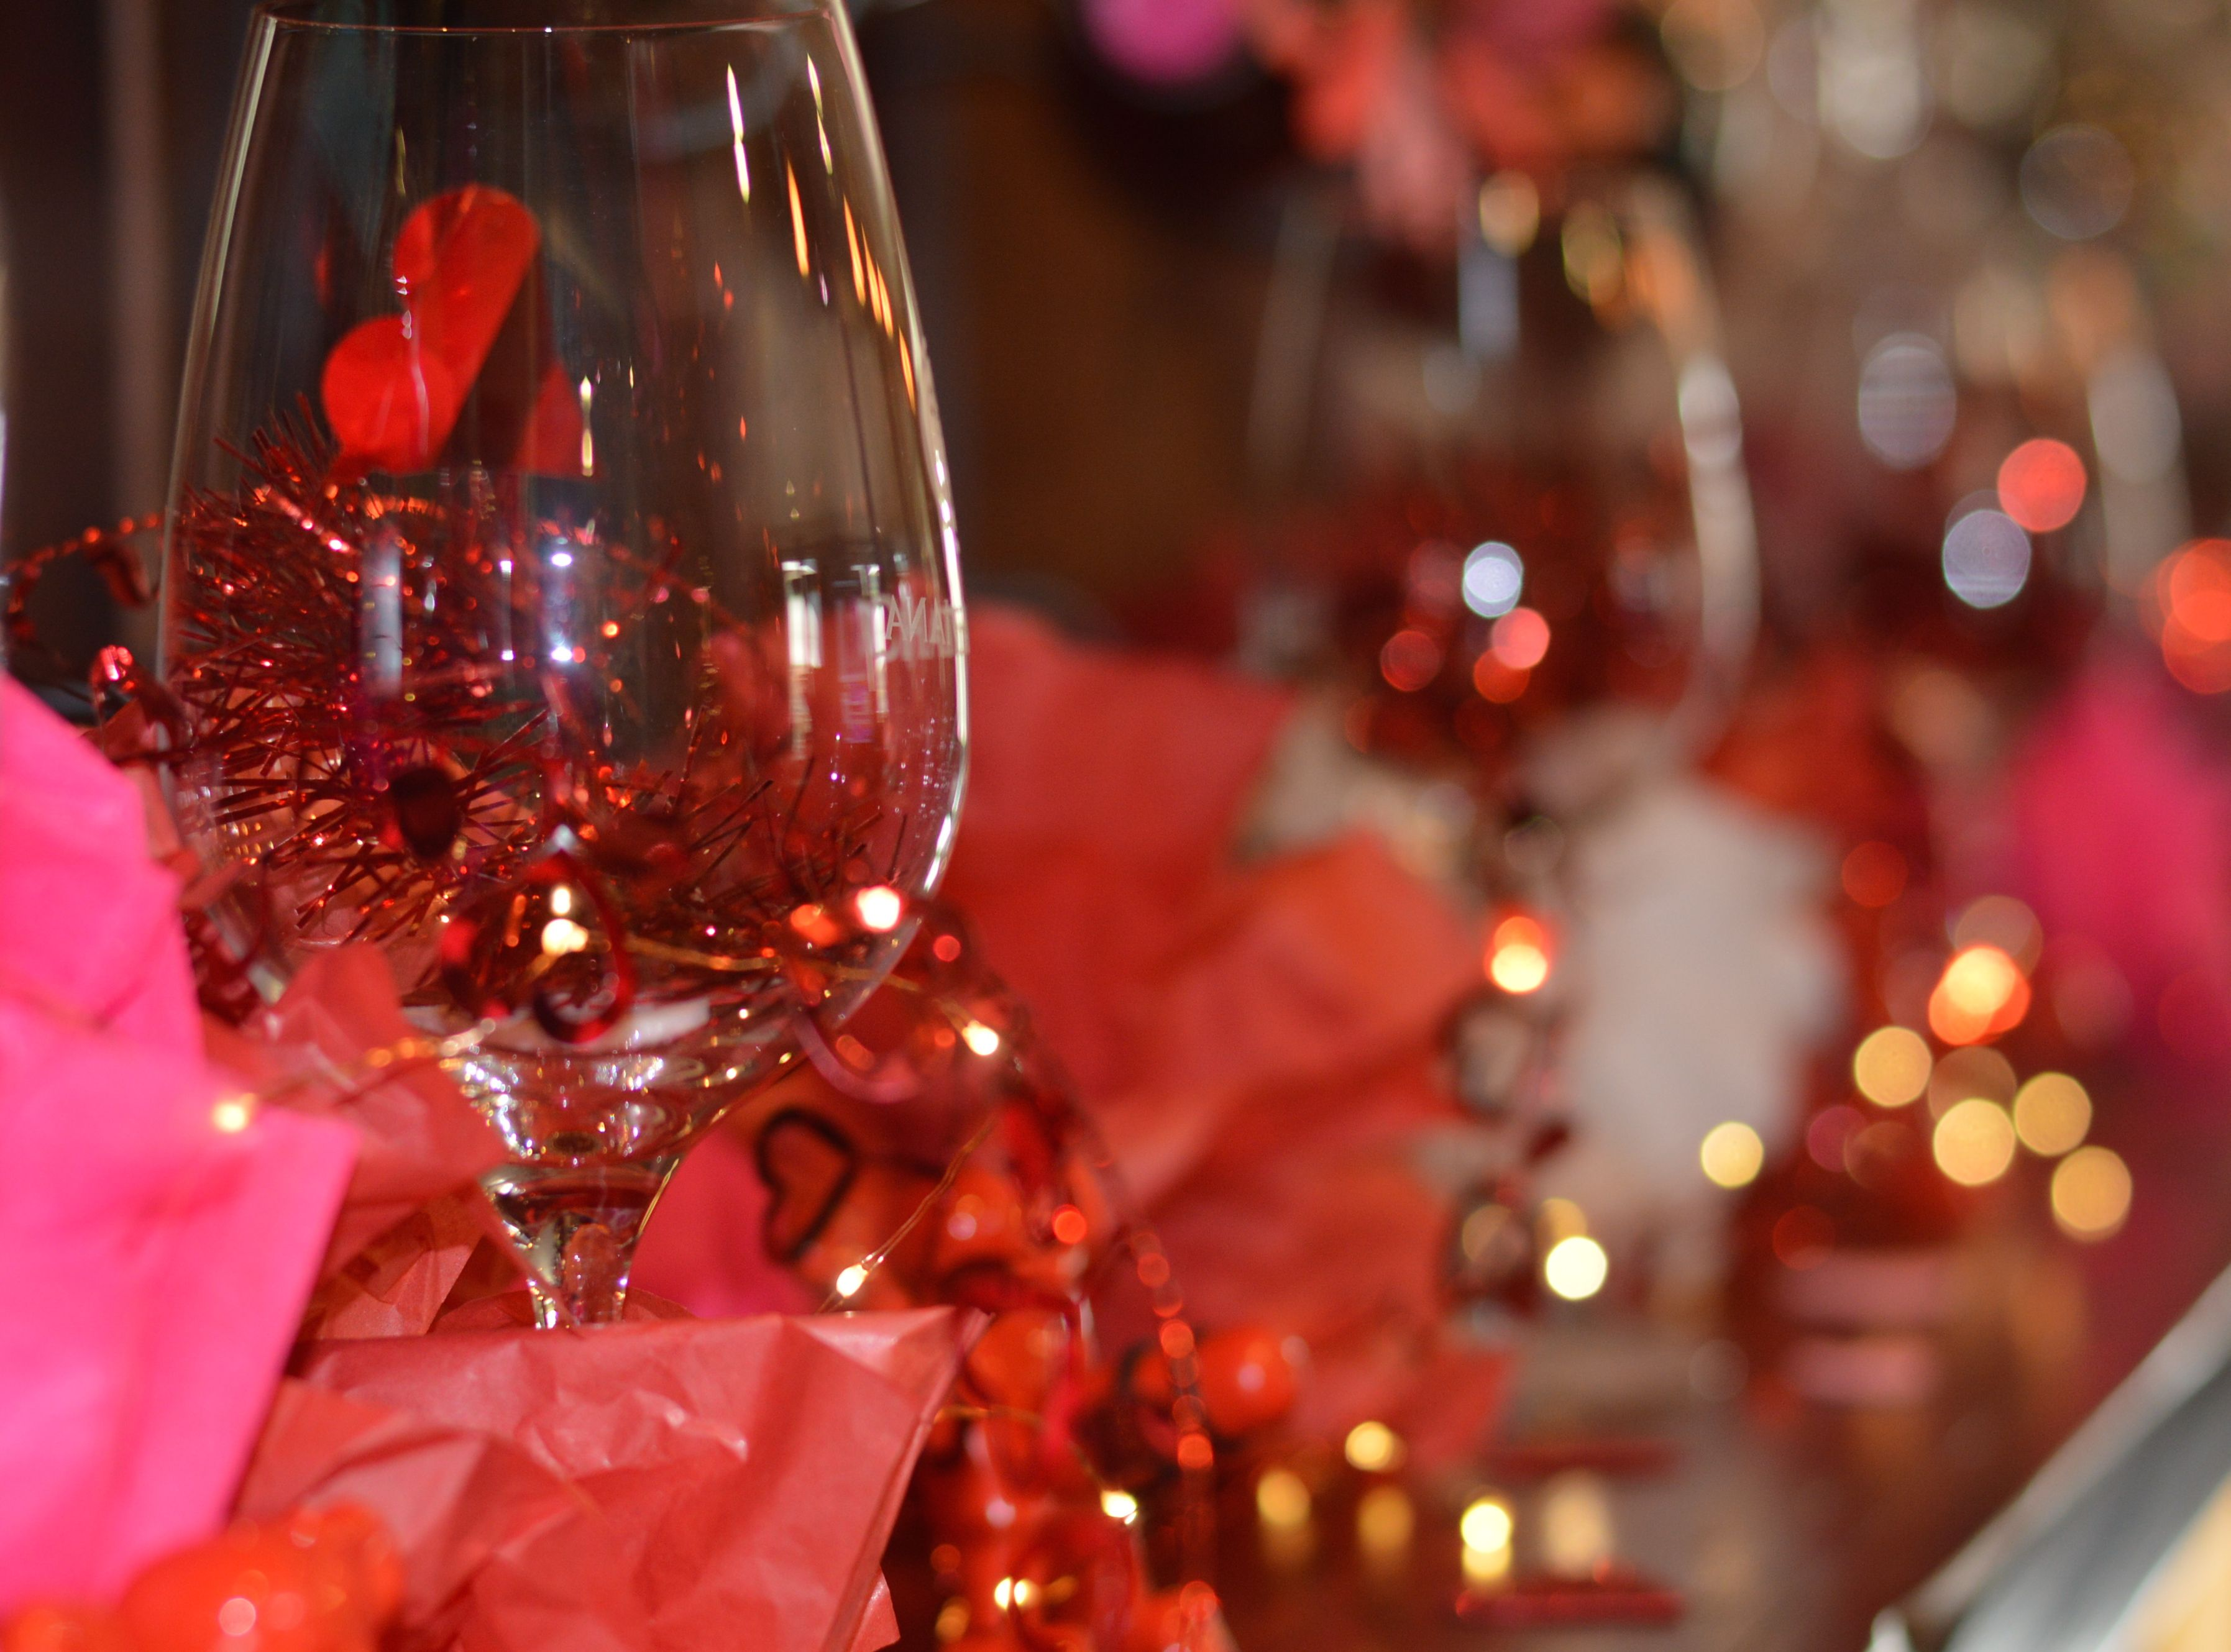 Romance and wine have always gone hand in hand which is why more and more people choose wine country as a romantic getaway destination. Sonoma County is made up of a sea of vineyards that roll over hills and spillRead more